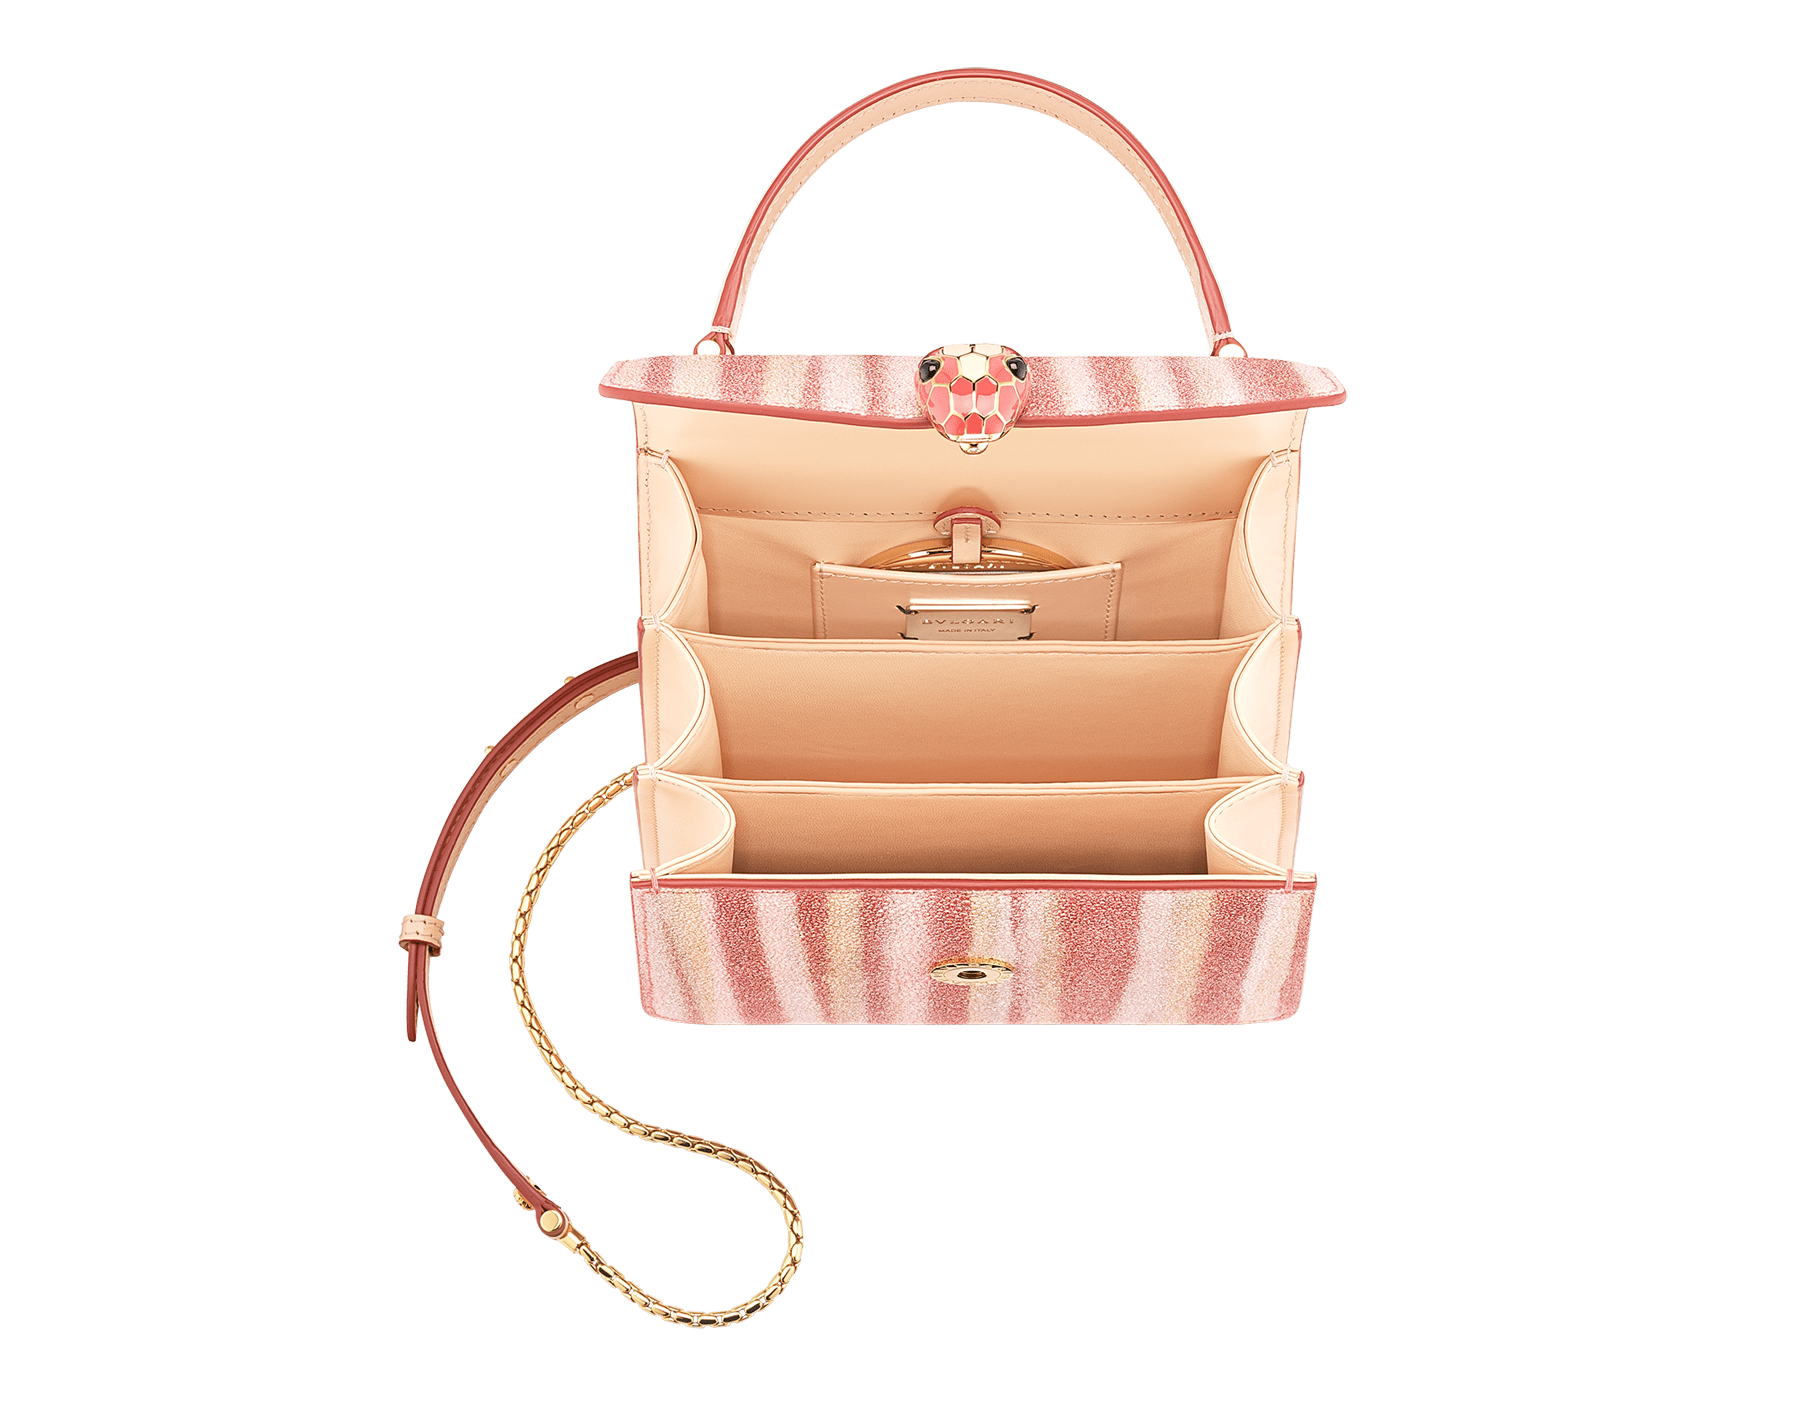 """Serpenti Forever"" crossbody bag in multicolor ""Ministriped"" galuchat skin body and peach calf leather sides, with peach nappa leather internal lining. Tempting snakehead closure in gold plated brass enriched with dark and matte peach enamel and black onyx eyes. 290558 image 2"